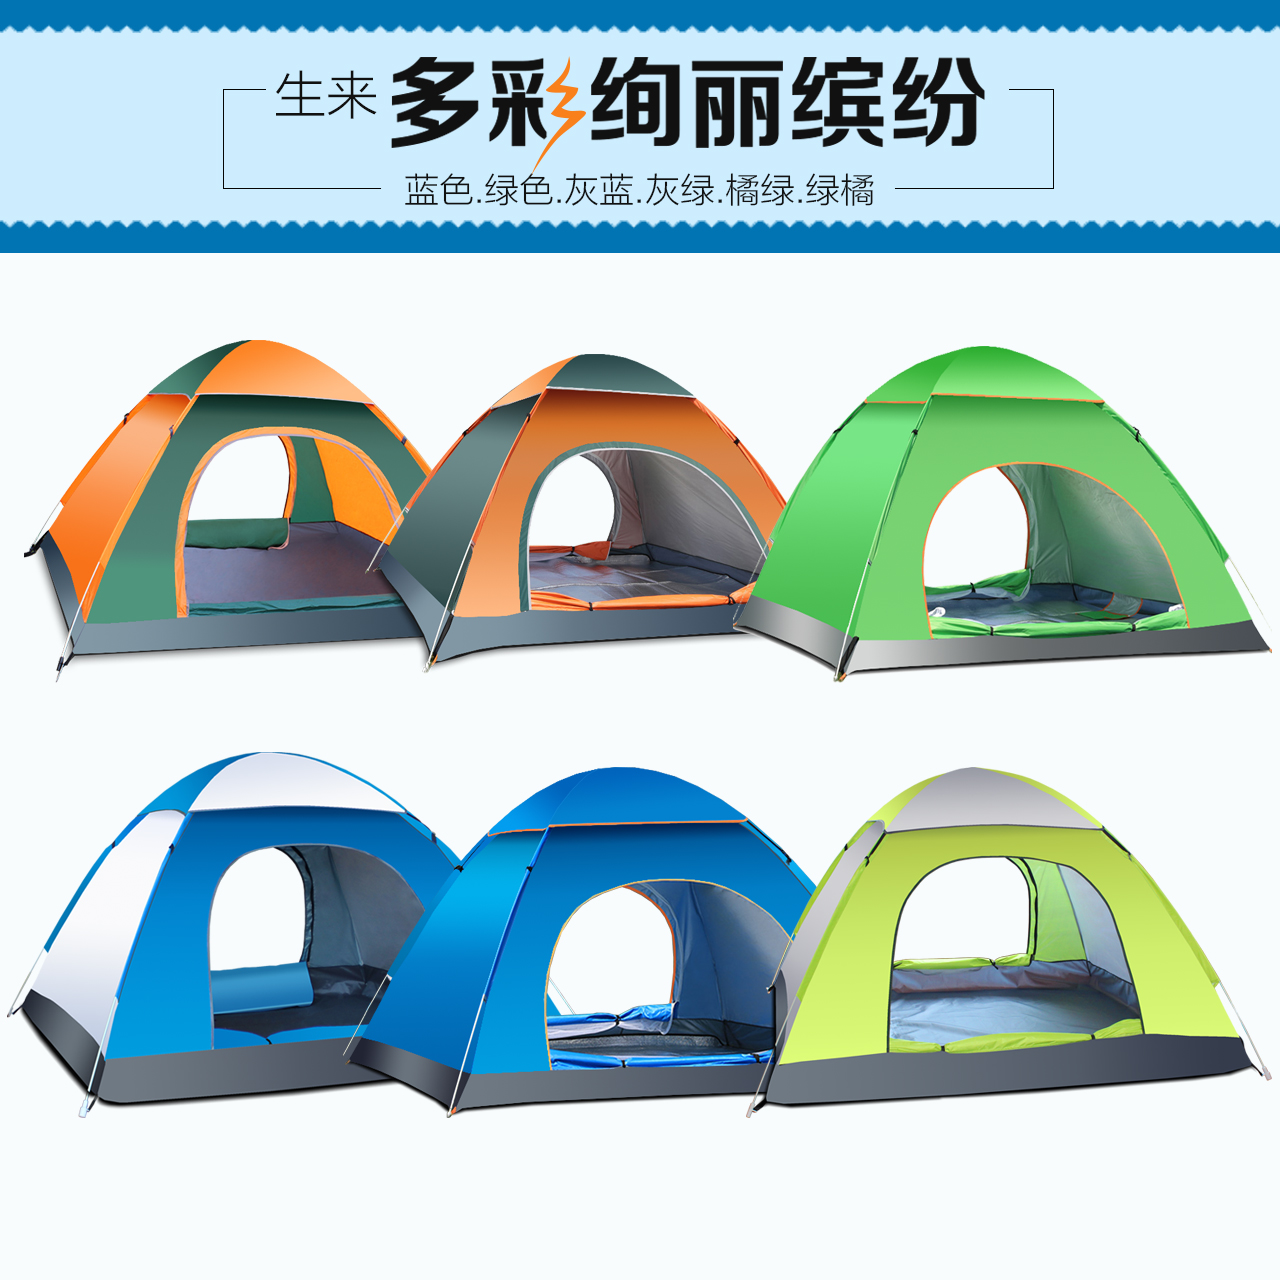 ФОТО New outdoor camping tent 2 seconds to open the tent outdoor 3-4 automatic double camping  waterproof sunscreen